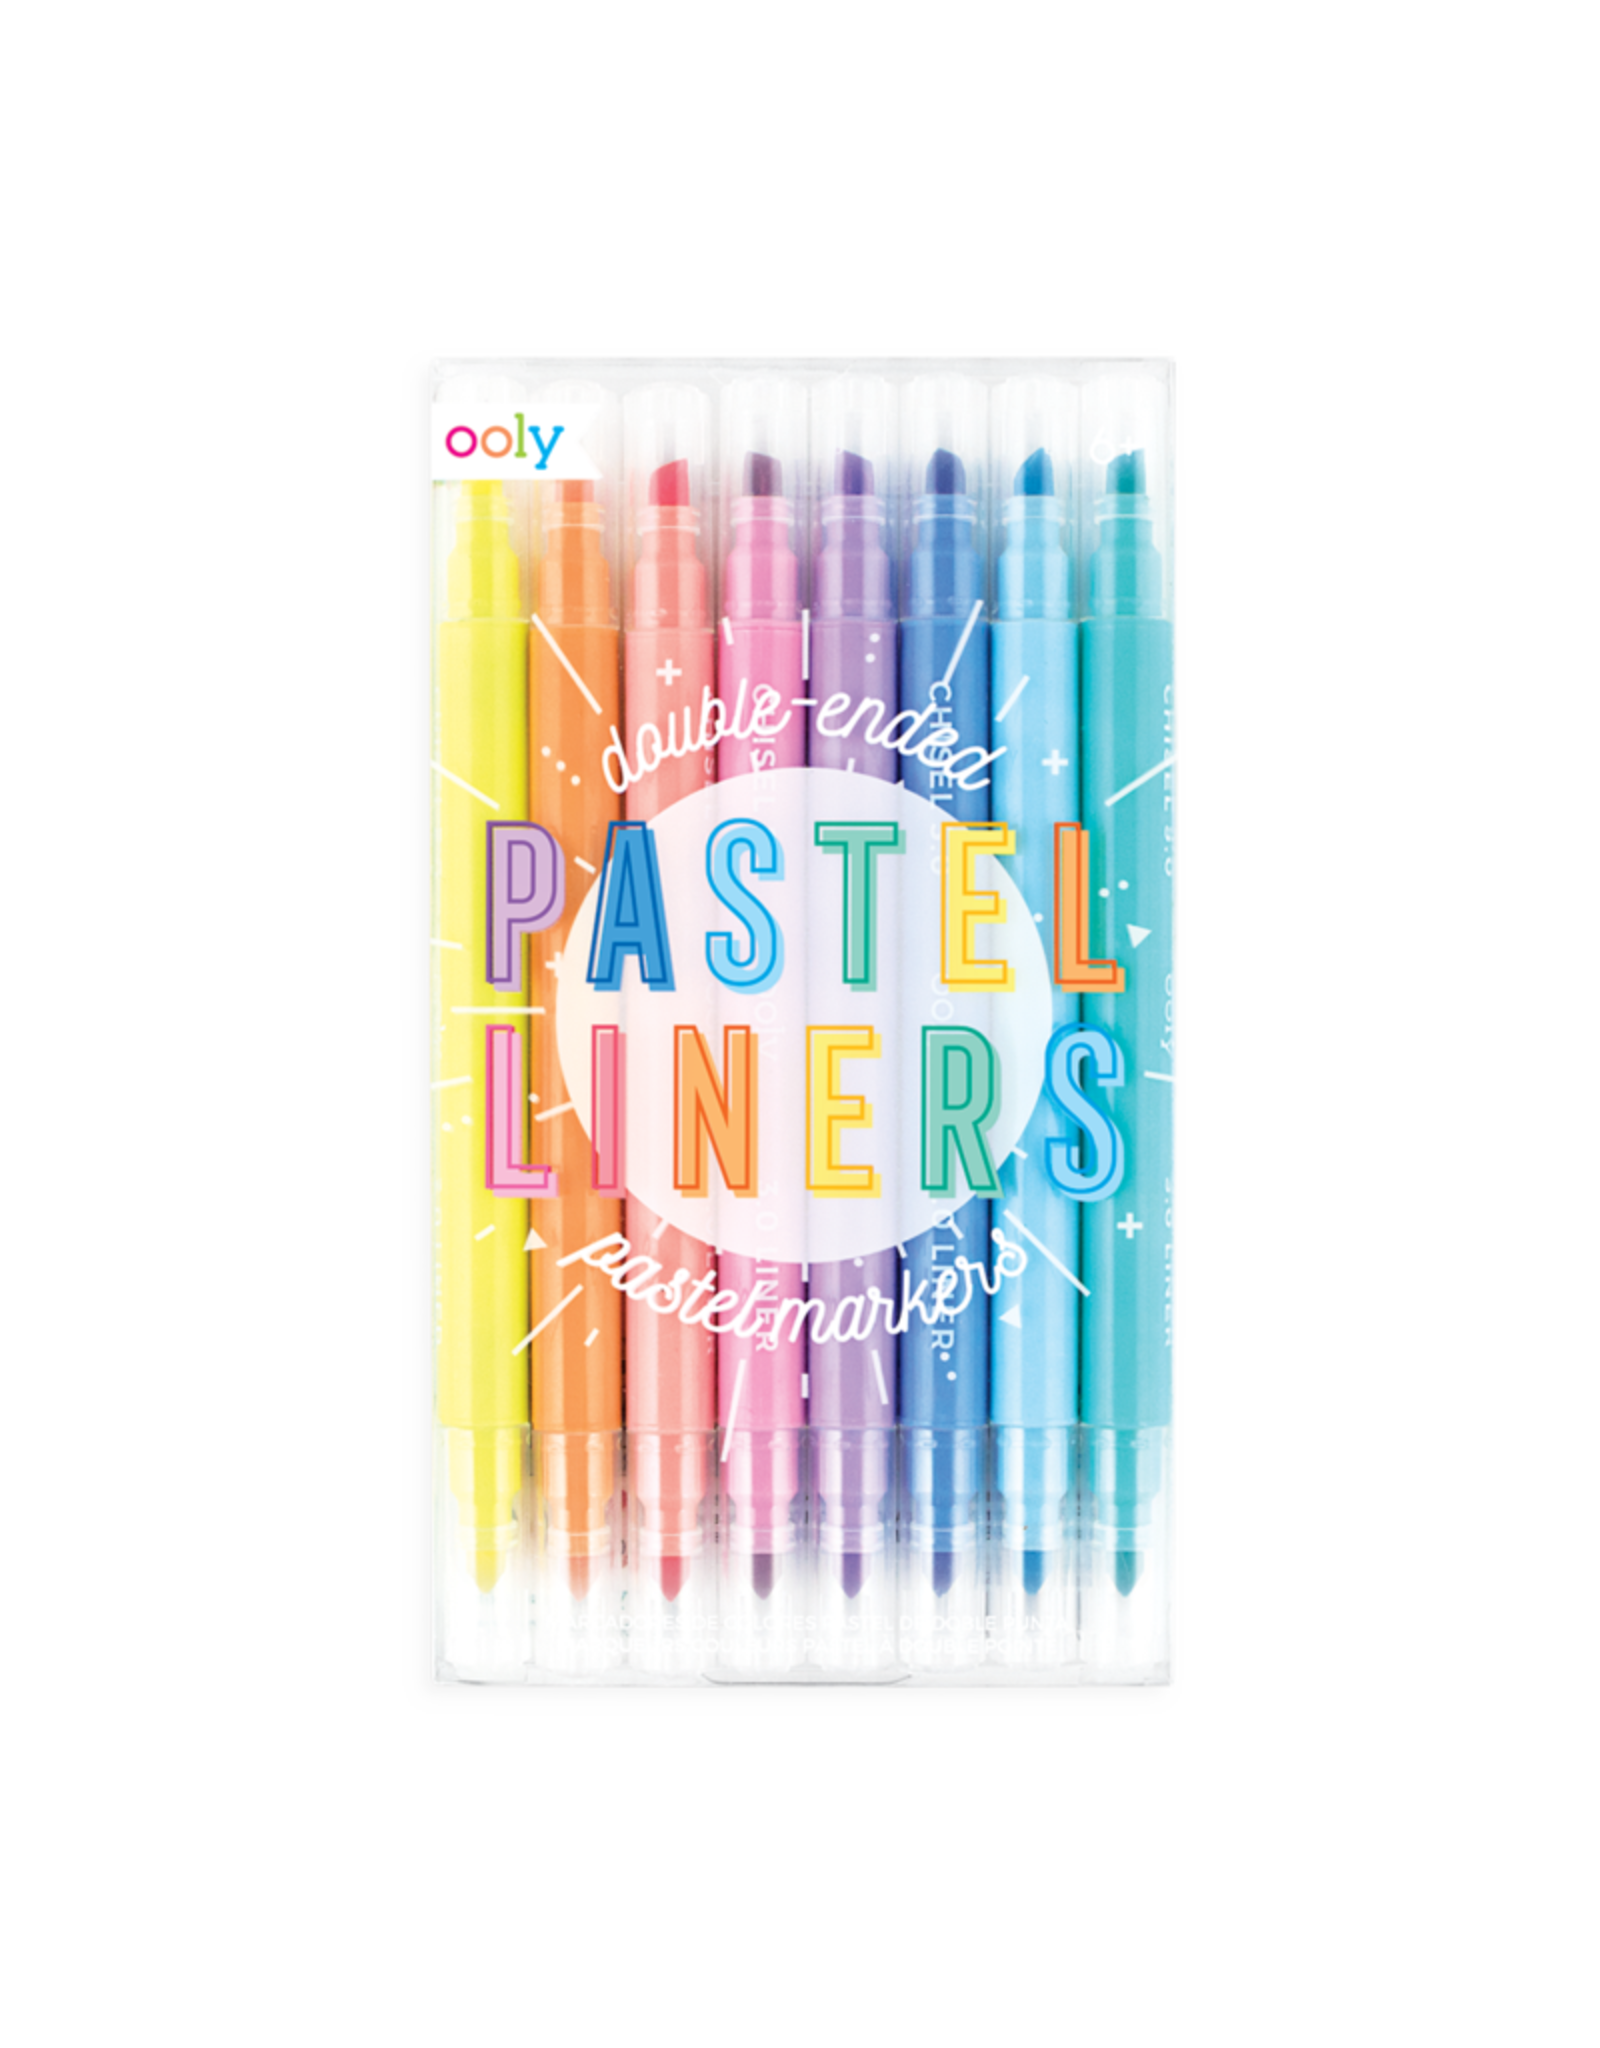 Ooly Pastel Liners Double Ended Markers - Set Of 8